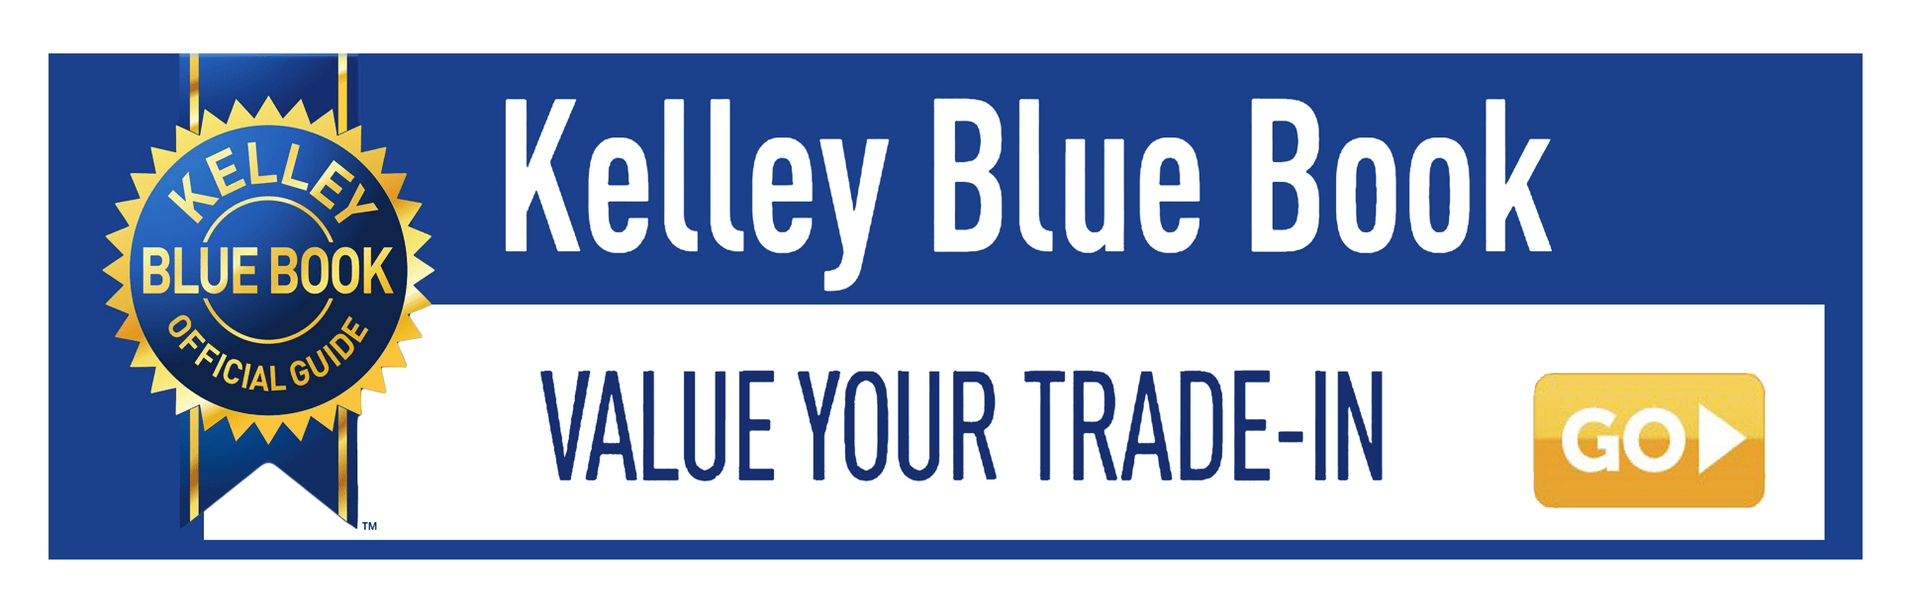 KBB Value Your Trade-In